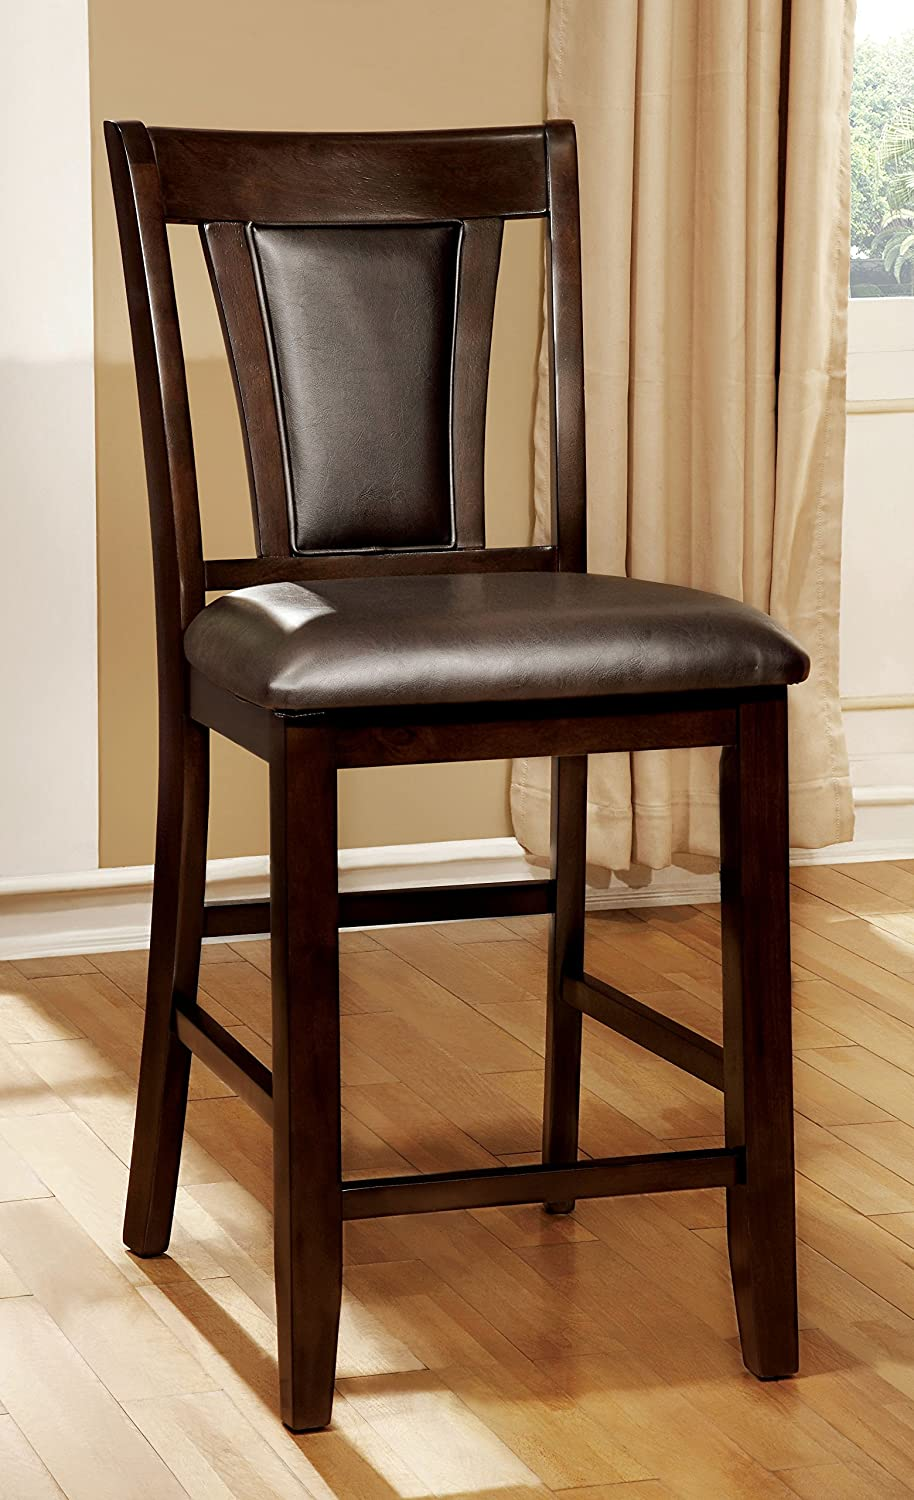 Furniture of America Dalcroze Modern Pub Dining Chair, Espresso Leatherette, Set of 2